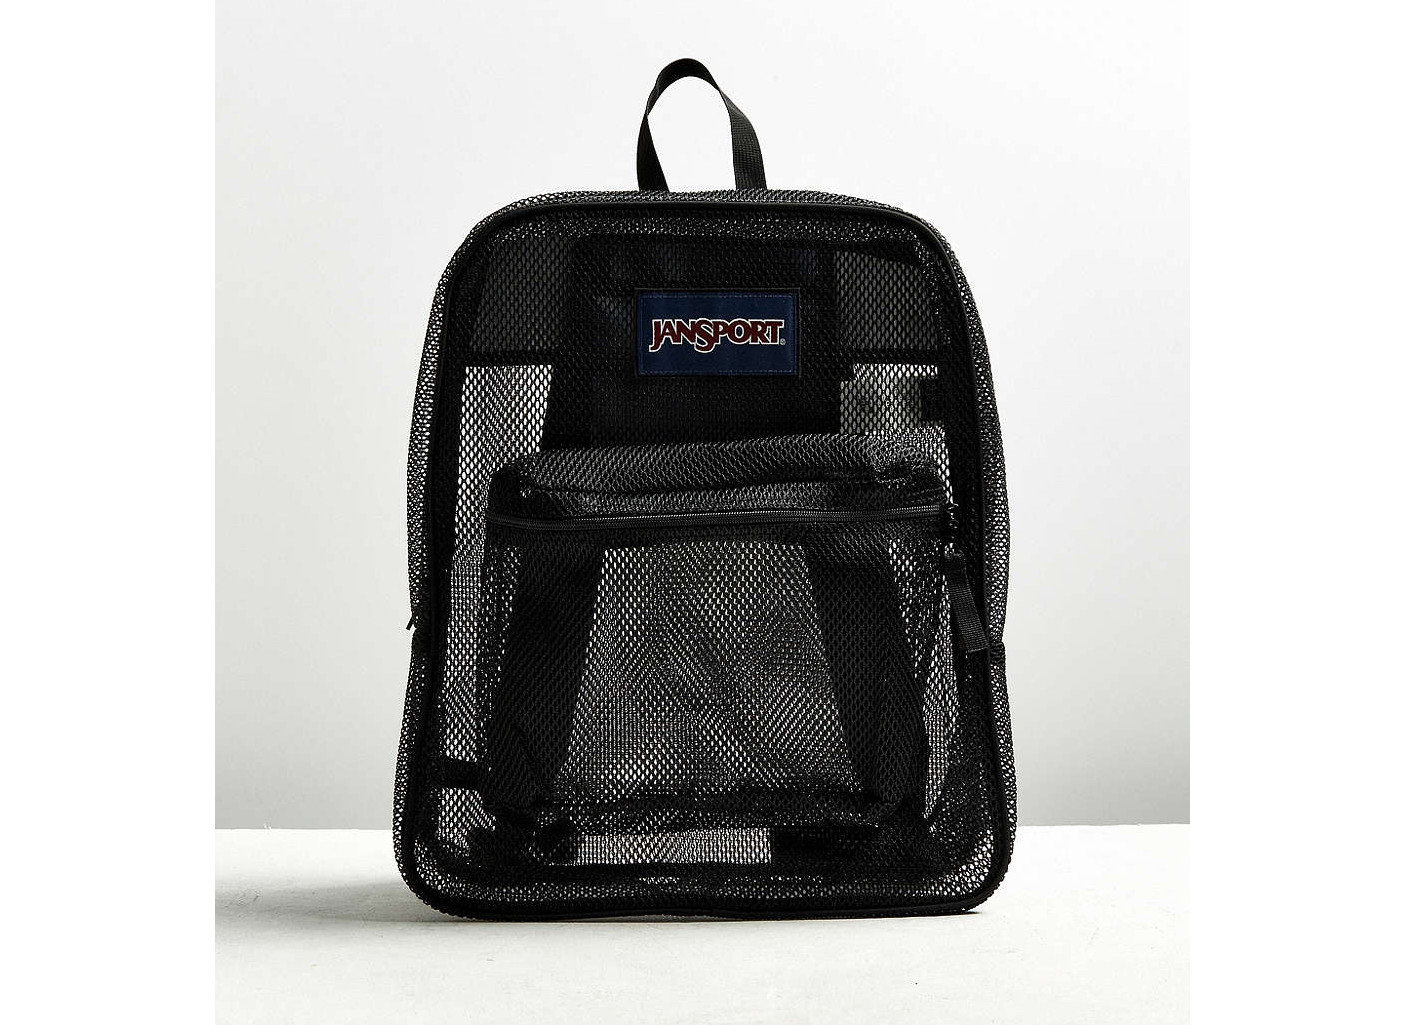 Style + Design accessory case bag indoor product black product design backpack